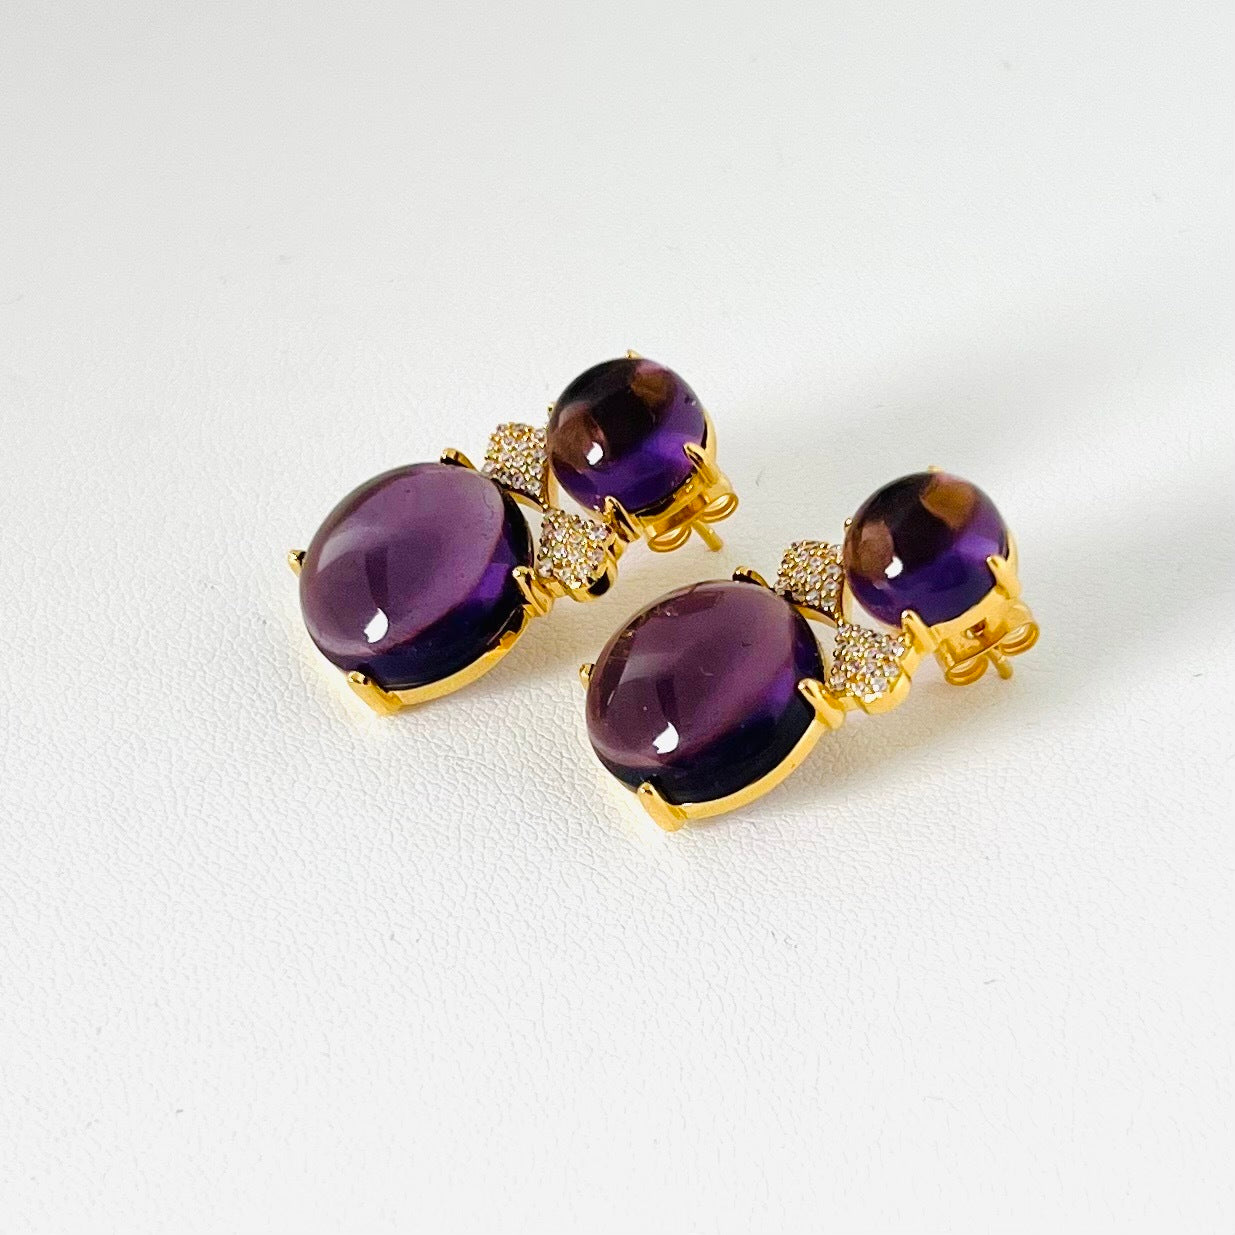 LOCKDOWN SALE!! Rose Gold Vermeil and Pink Topaz Butterfly Necklace!